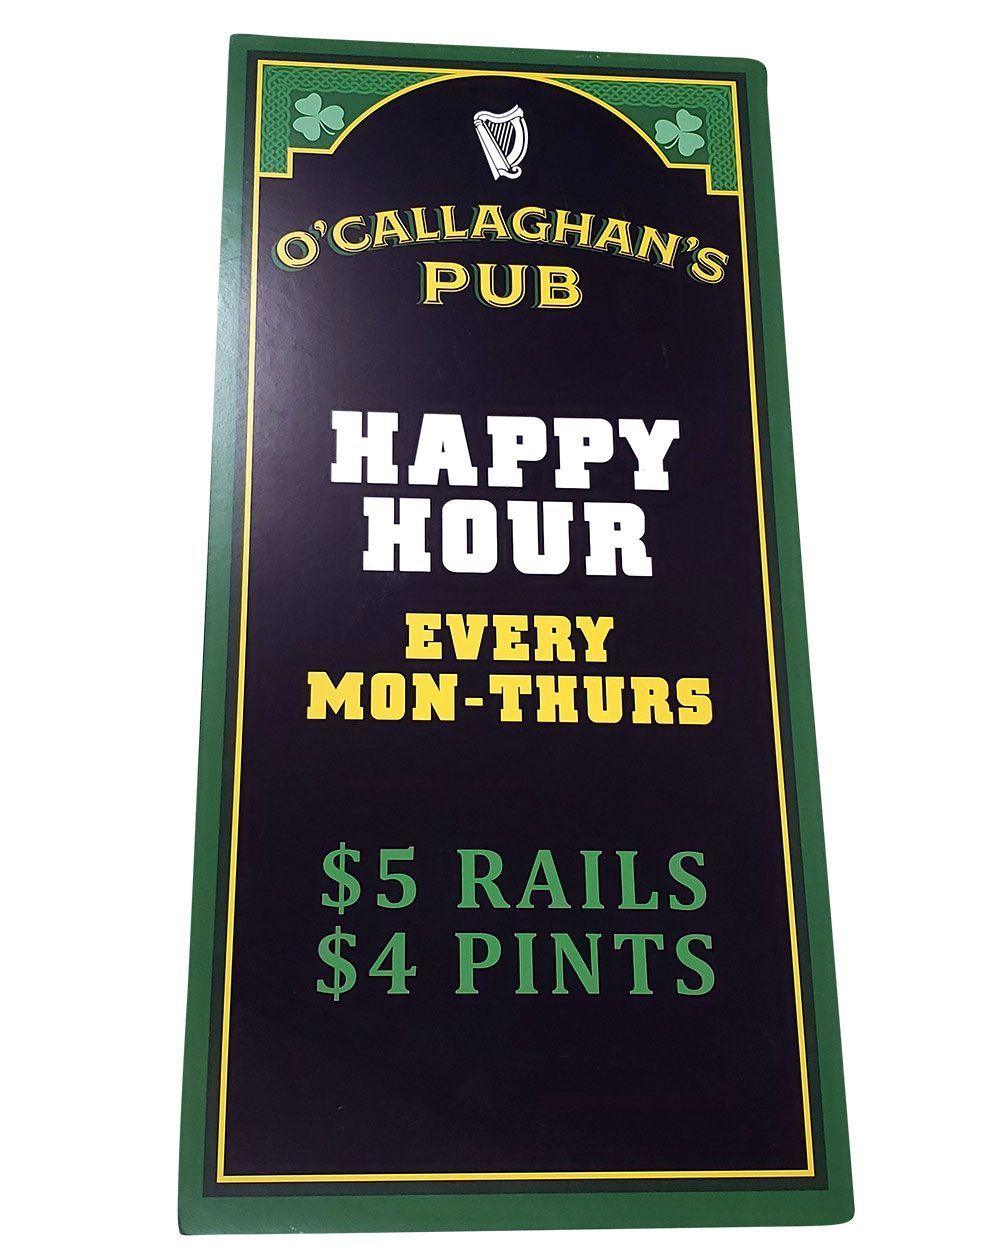 You're The Worst: O'Callaghan's Pub Happy Hour Sign